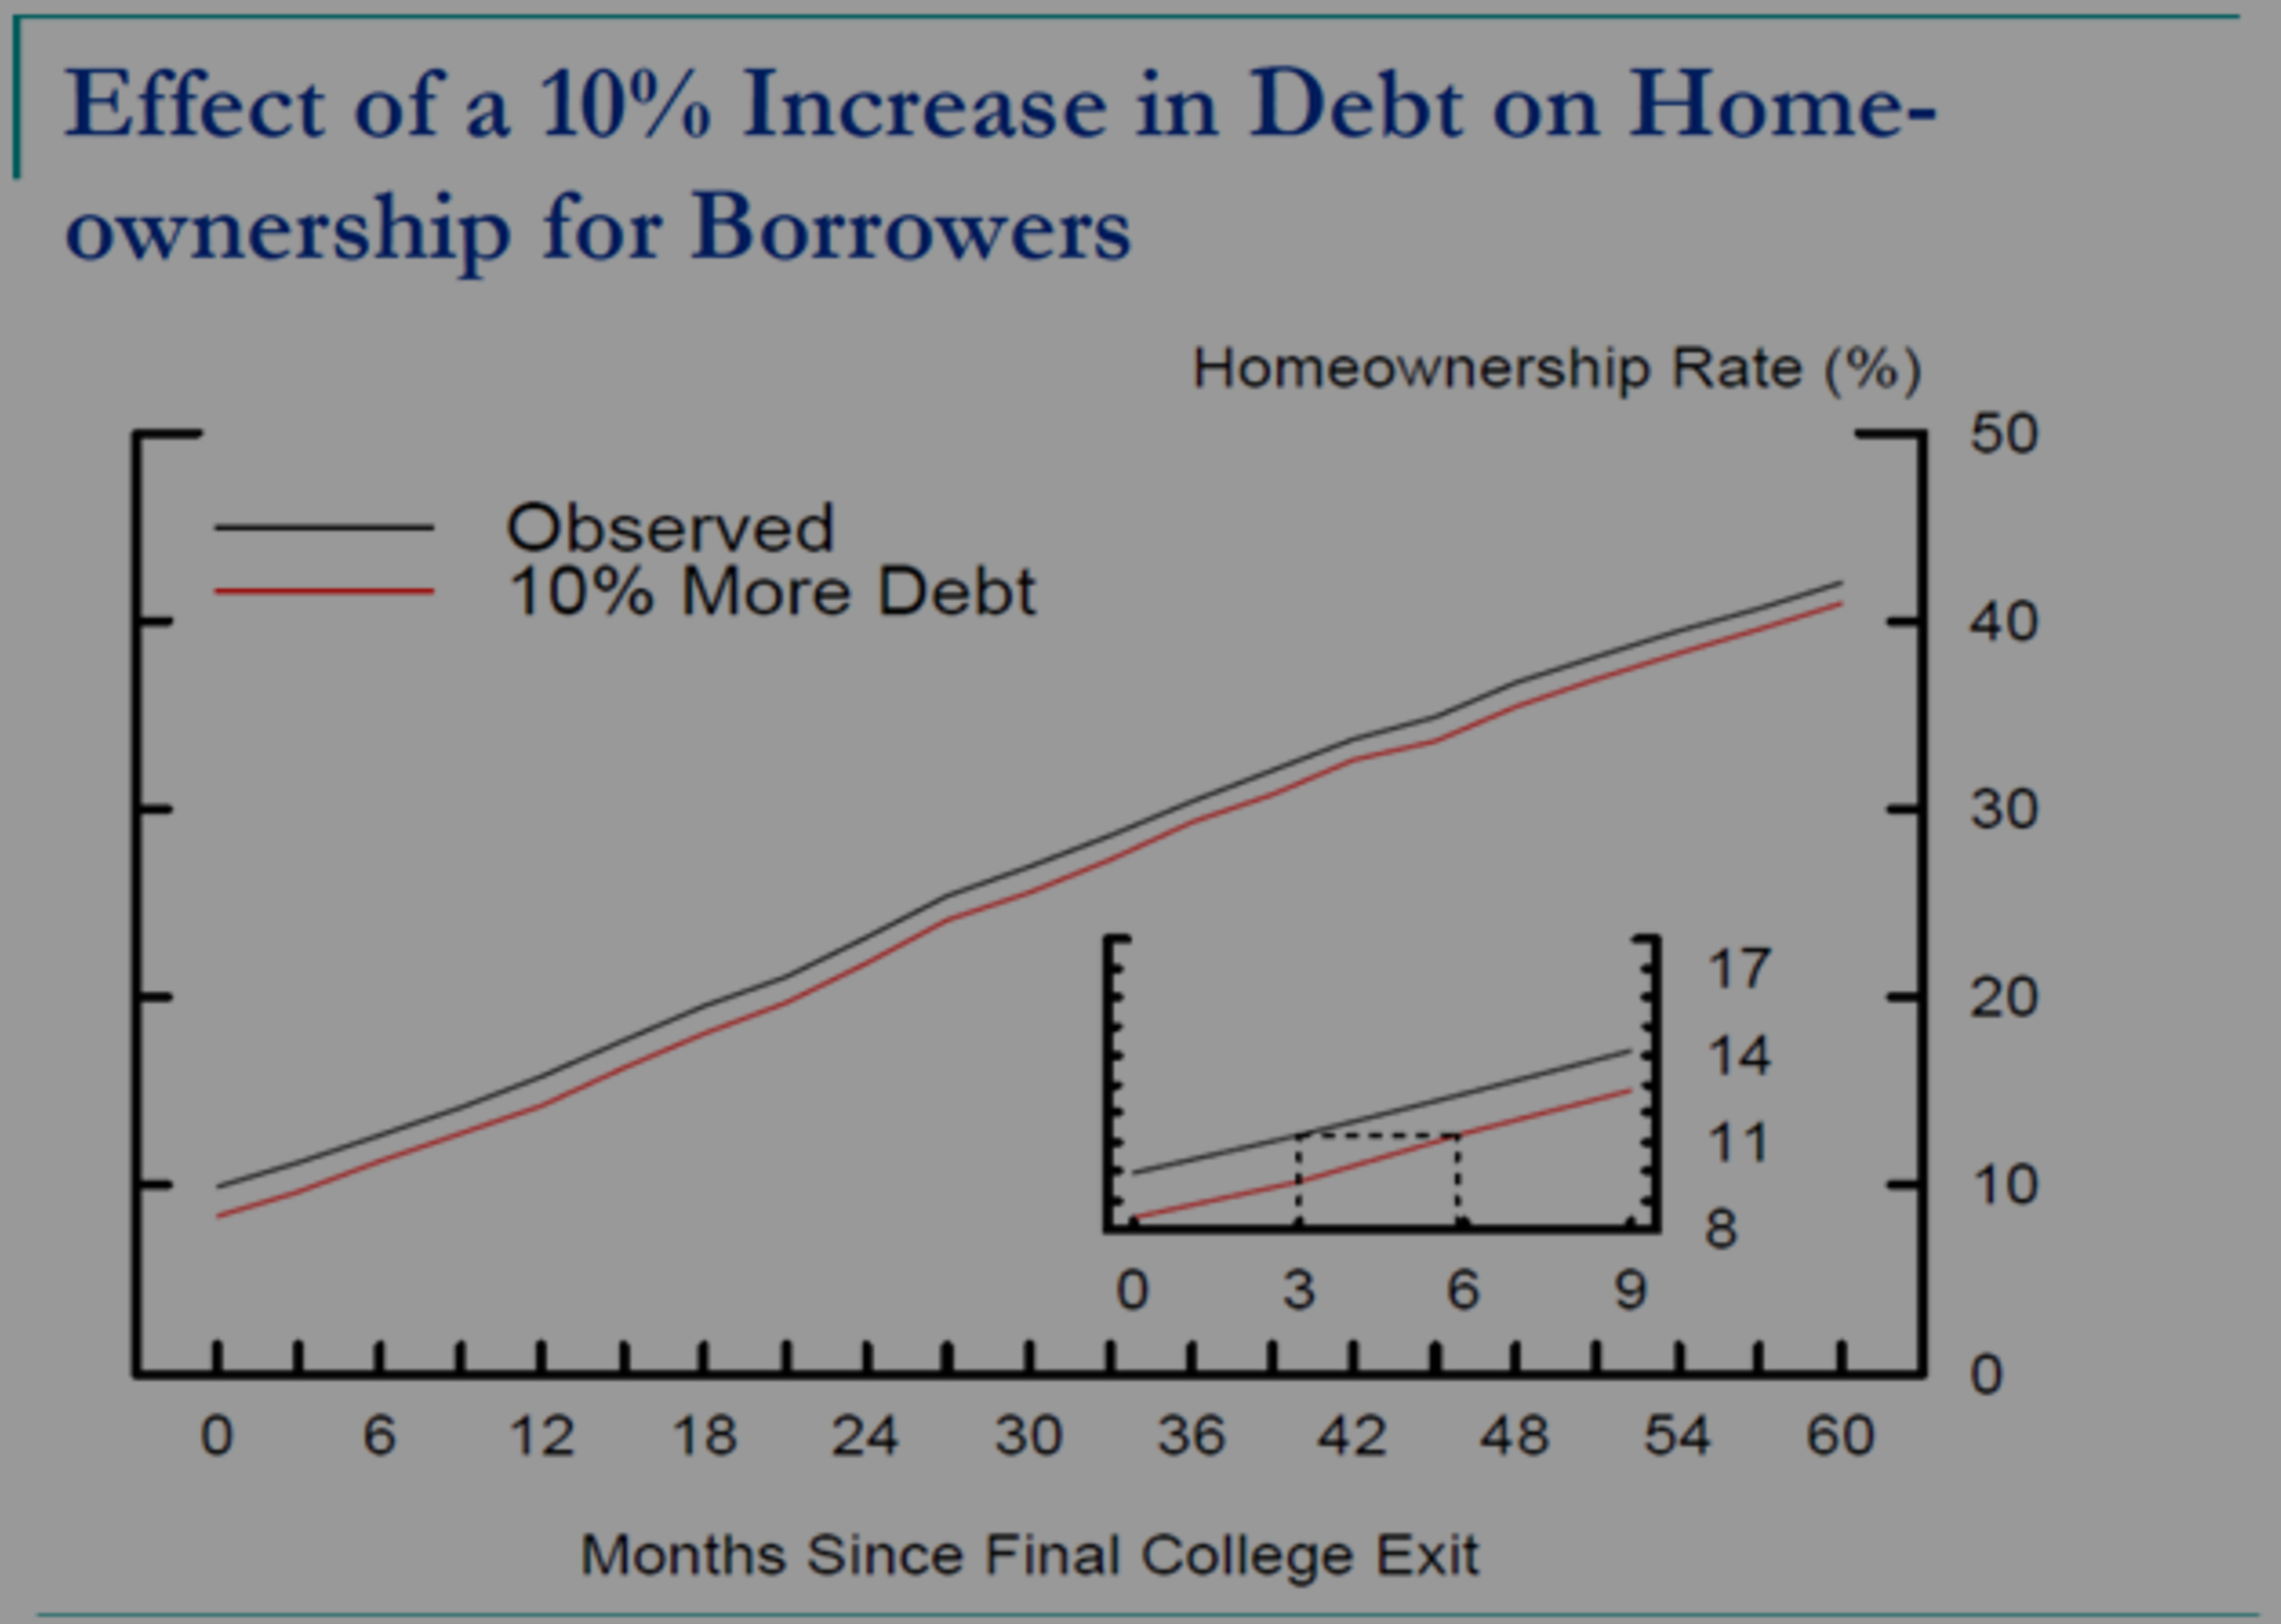 Economists Study the Effect of Student Debt on Access to Homeownership